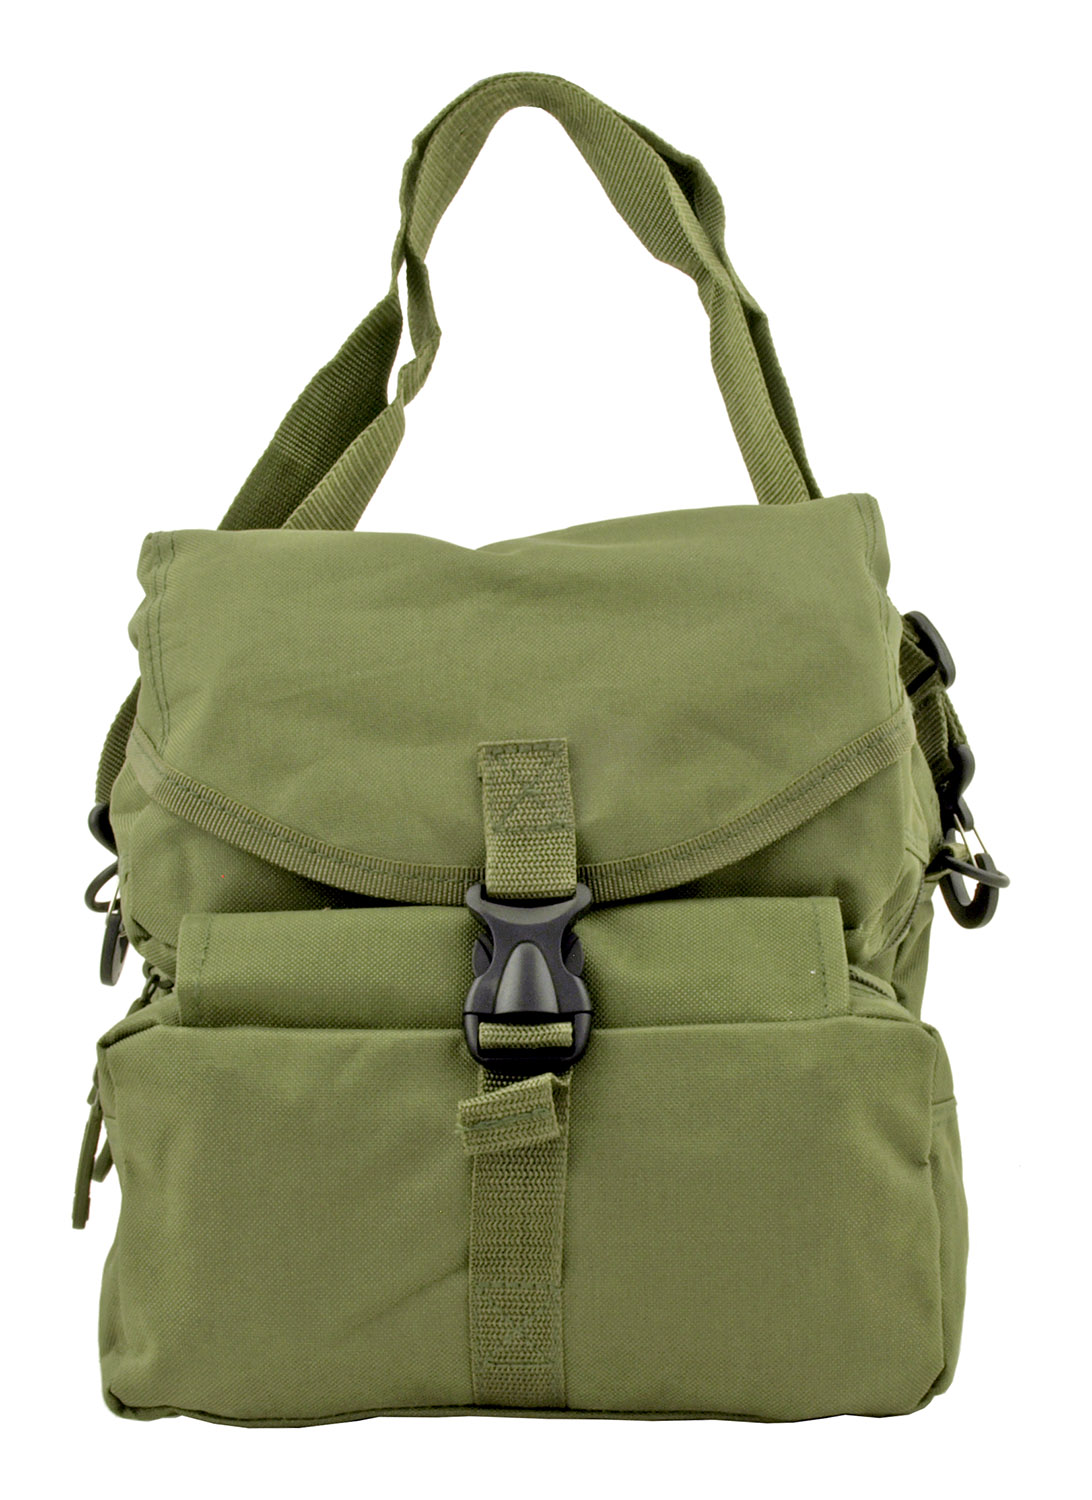 Tactical Folding Medical Egress Molle Attachment Rescue Bag - Olive Drab Green